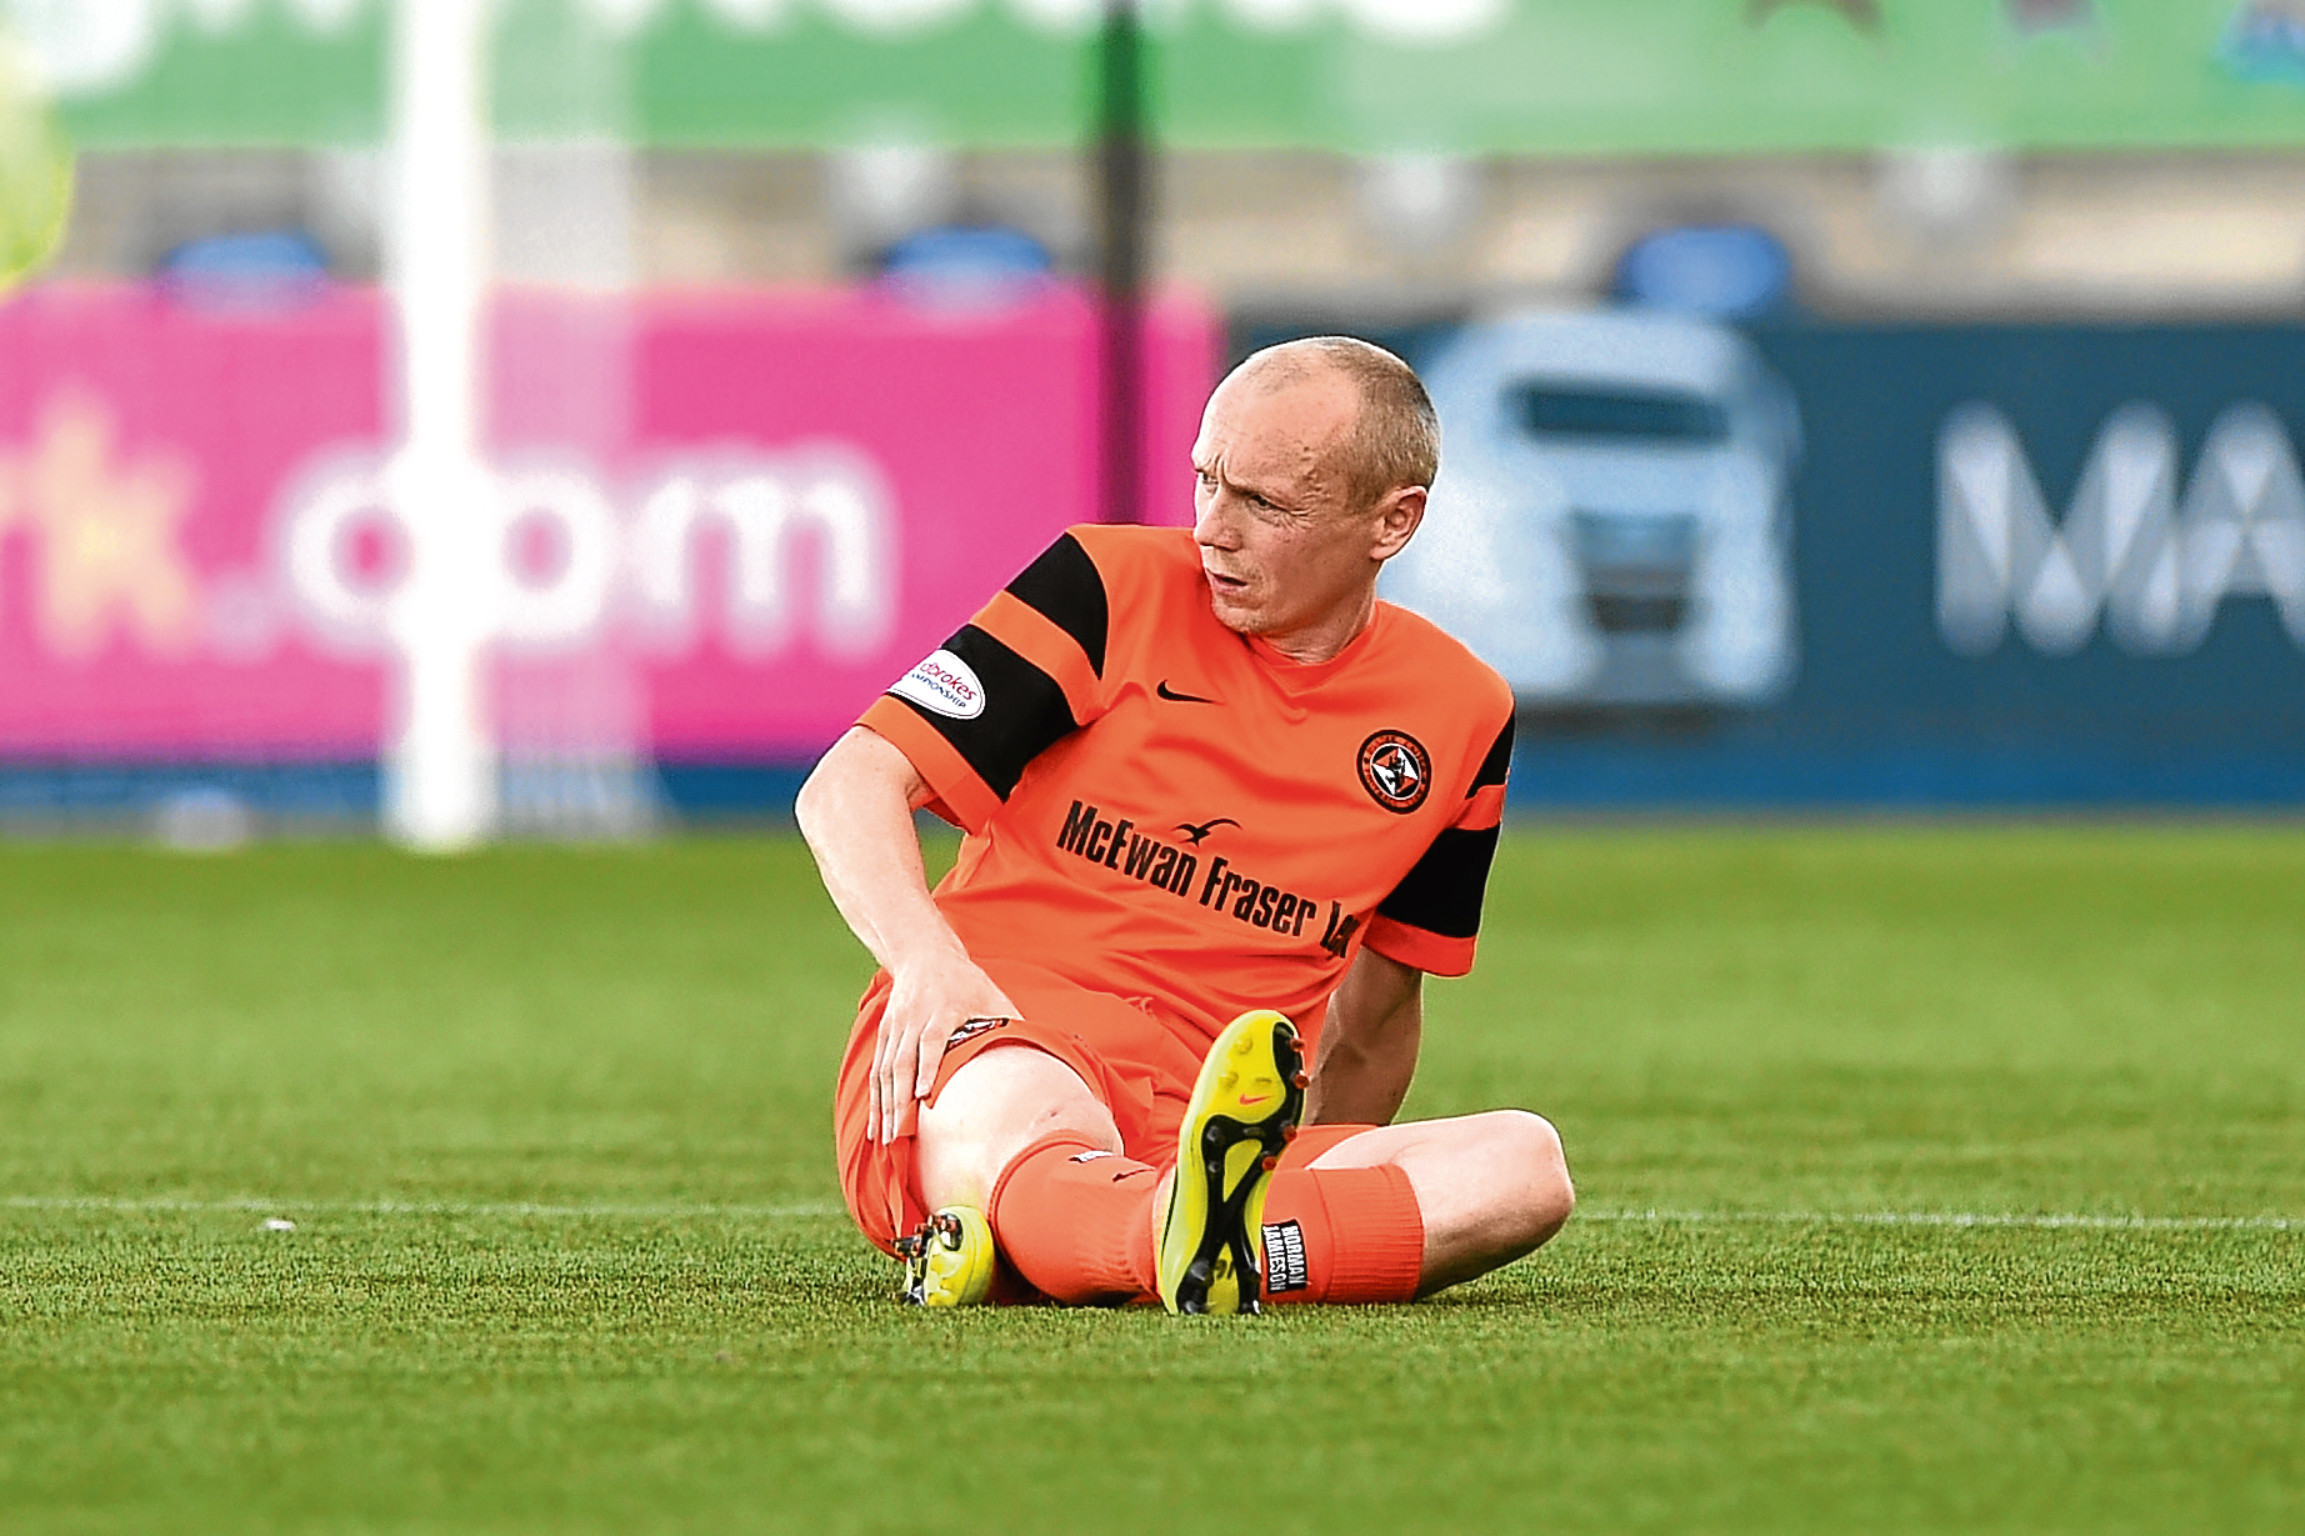 Dundee United midfielder Willo Flood was forced off in the recent game against Falkirk due to a thigh problem.